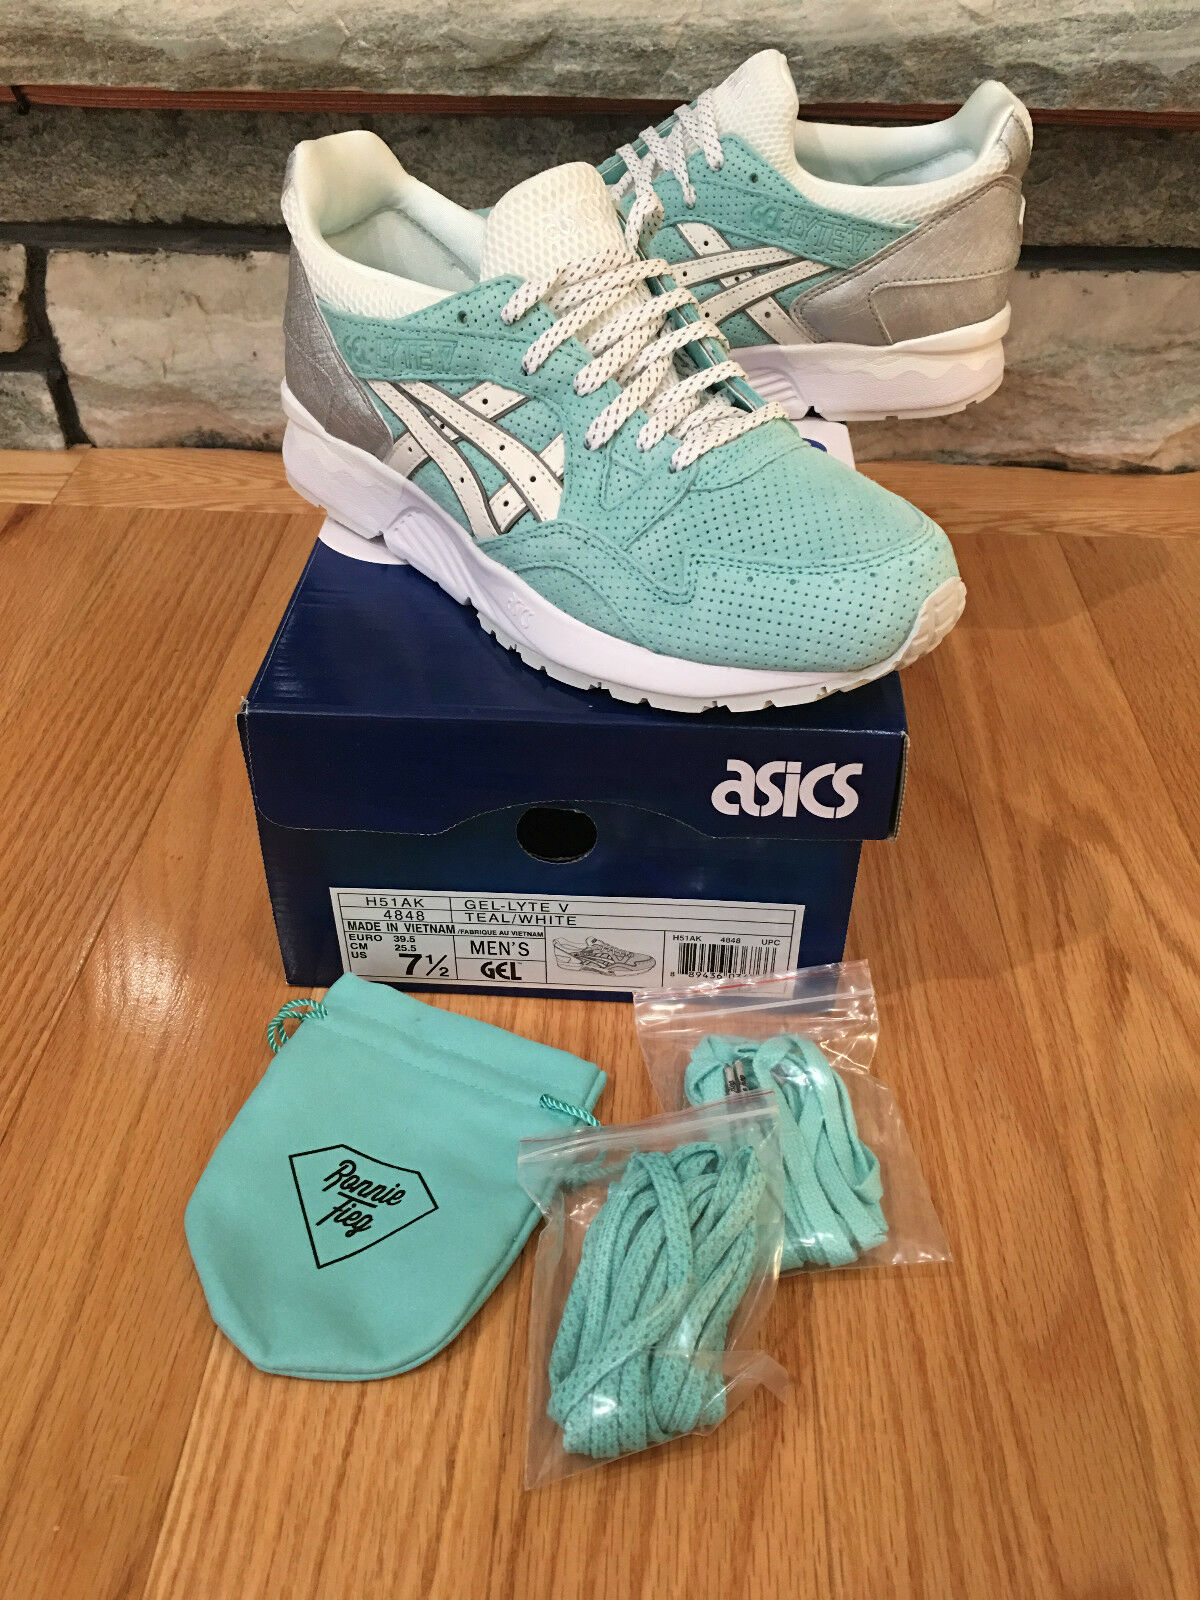 ASICS x KITH Ronnie Fieg x TIFFANY Diamond Supply Gel Lyte V Size 7.5 DS New